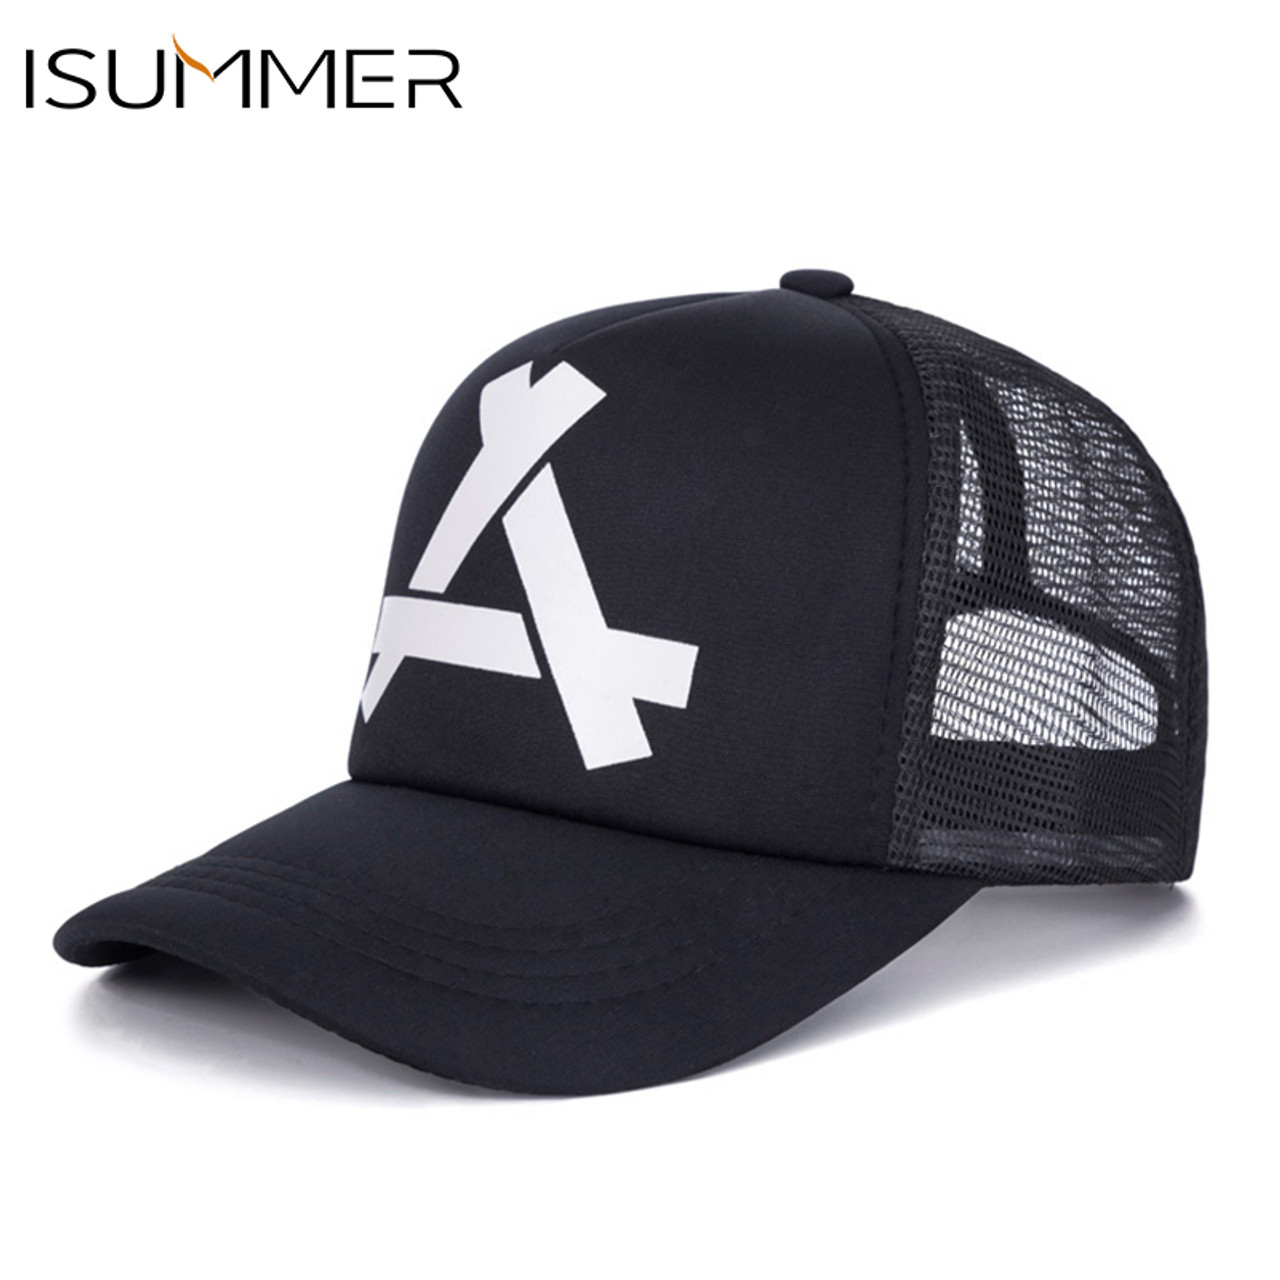 d1d06f12708db ISUMMER 2018 Summer Baseball Mesh Cap Men Hat Hip Hop Snapback Hat Dad Hat  Adjustable Leisure ...